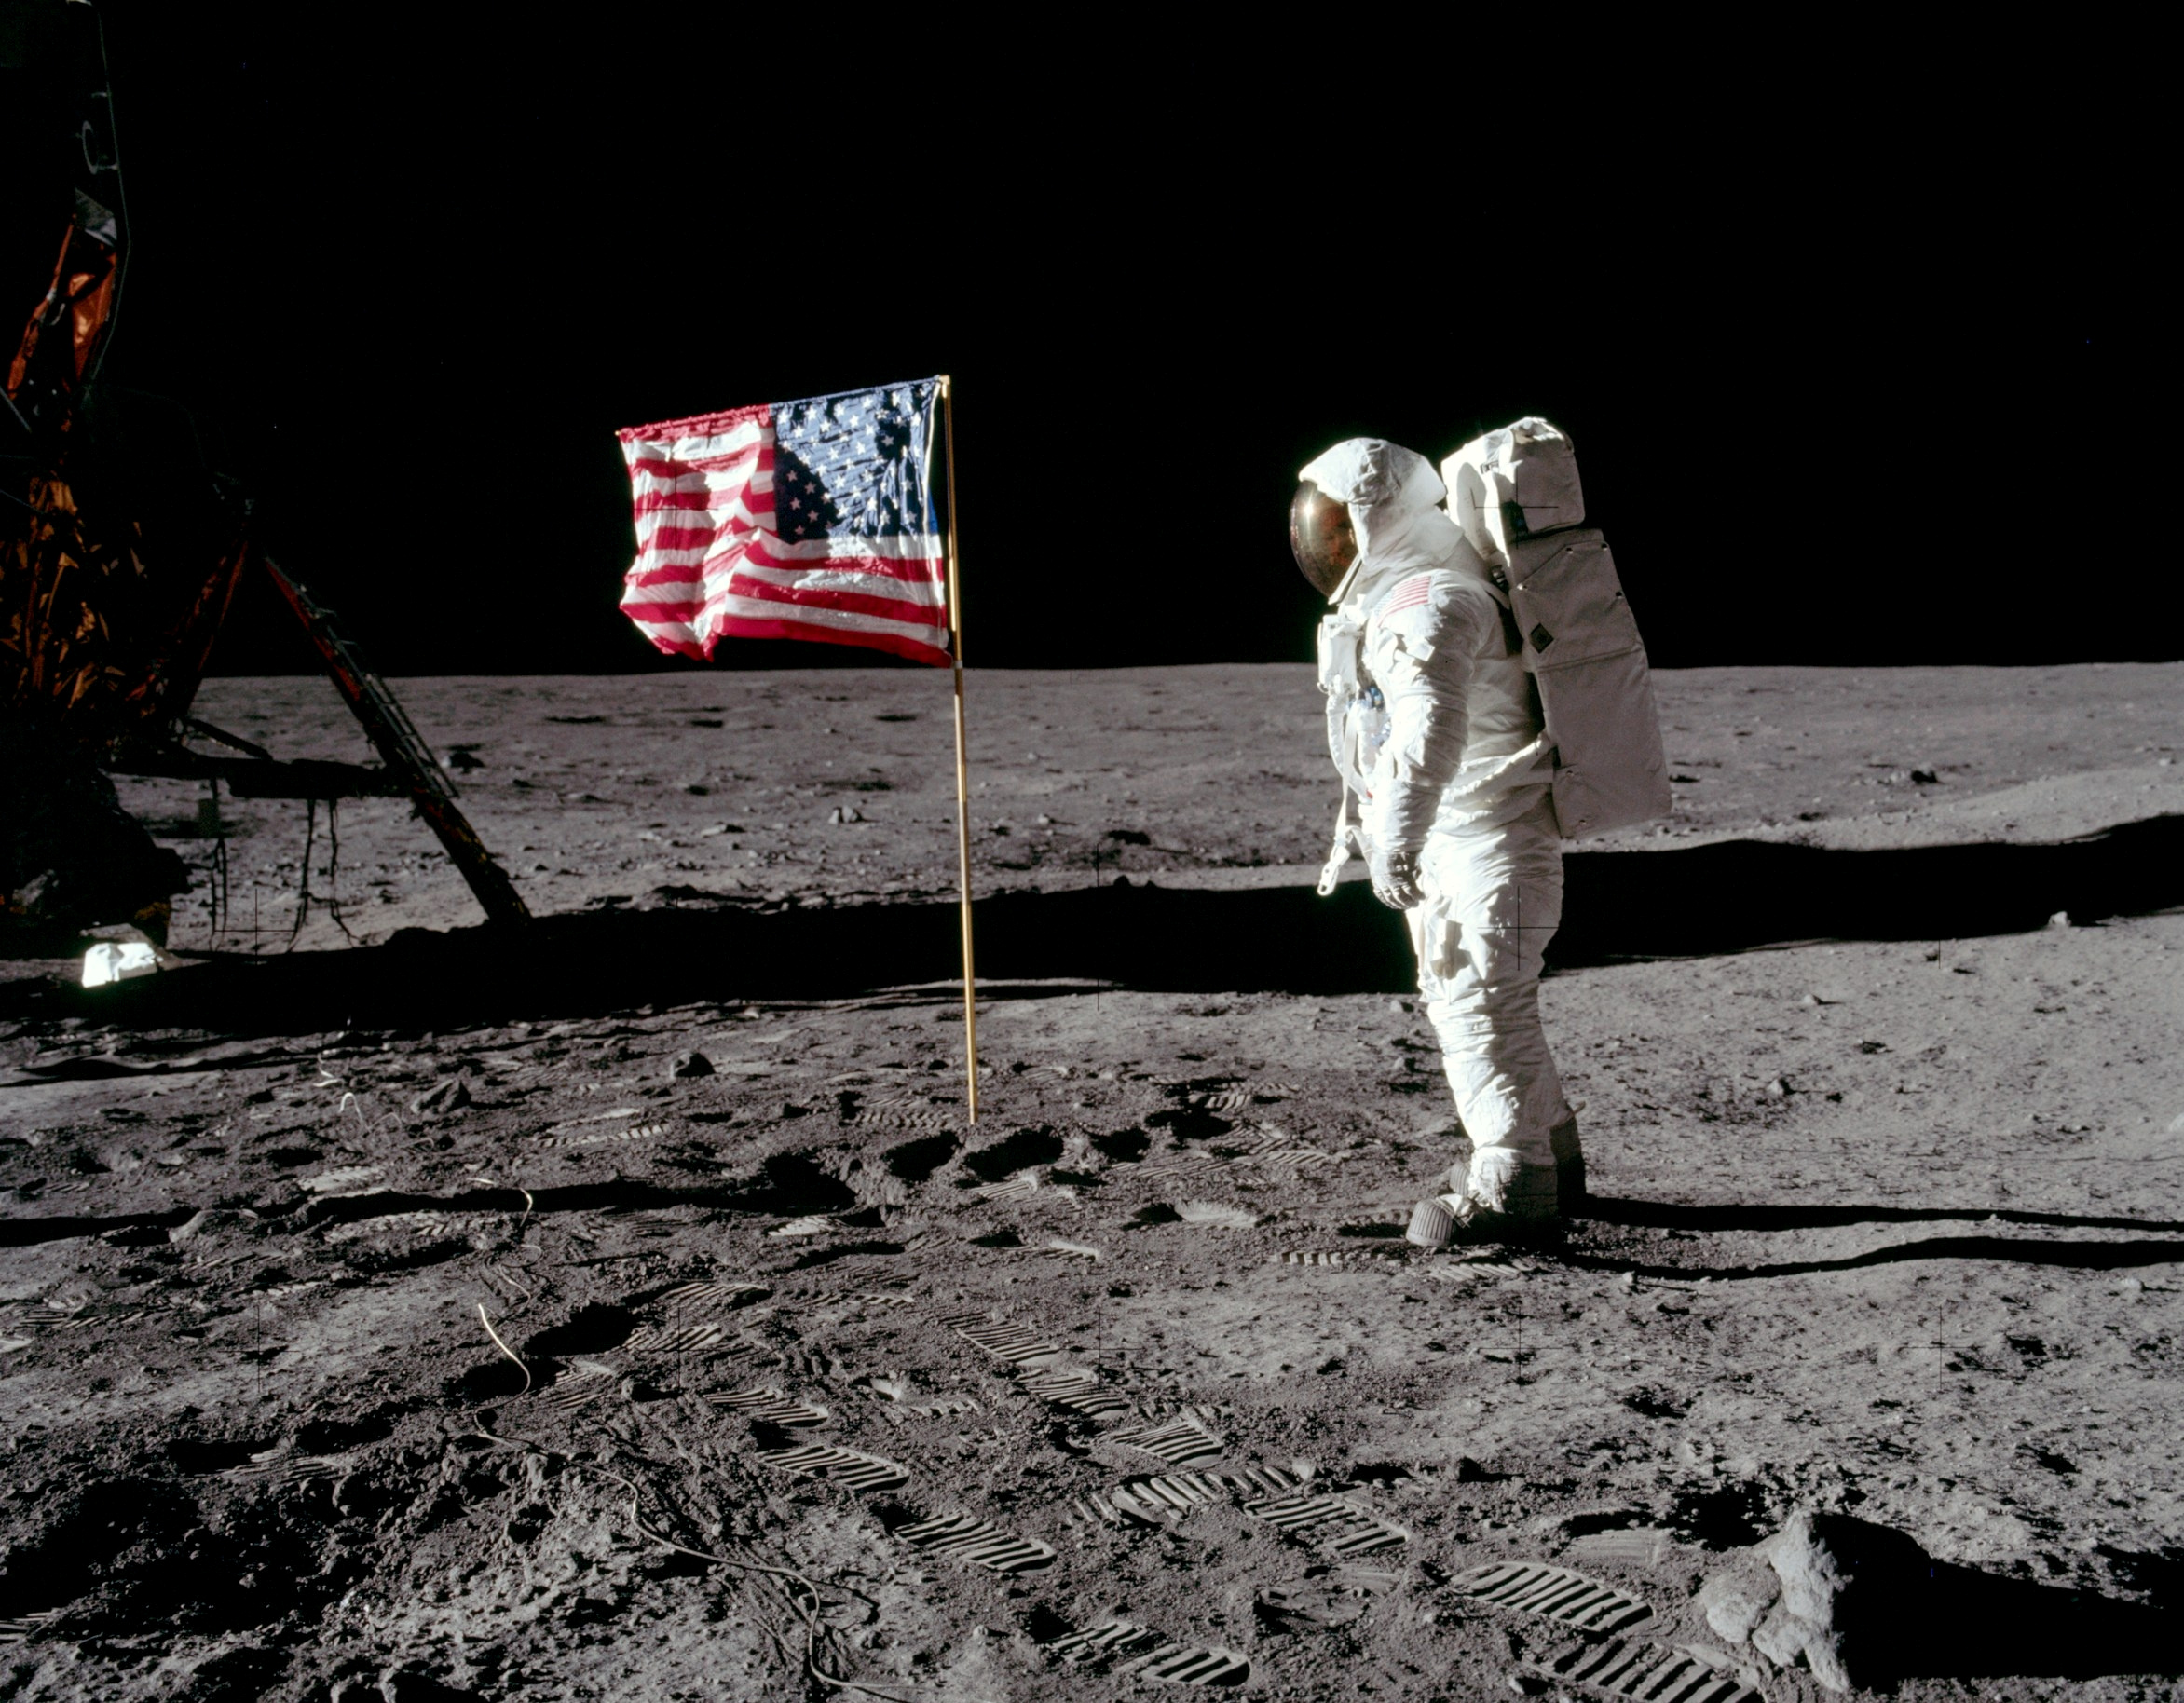 Astronaut Buzz Aldrin, lunar module pilot for Apollo 11, poses for a photograph beside the deployed United States flag during an extravehicular activity (EVA) on the moon, July 20, 1969. The lunar module (LM) is on the left, and the footprints of the astronauts are visible in the soil. Neil Armstrong/NASA/Handout via REUTERS   ATTENTION EDITORS - THIS IMAGE HAS BEEN SUPPLIED BY A THIRD PARTY